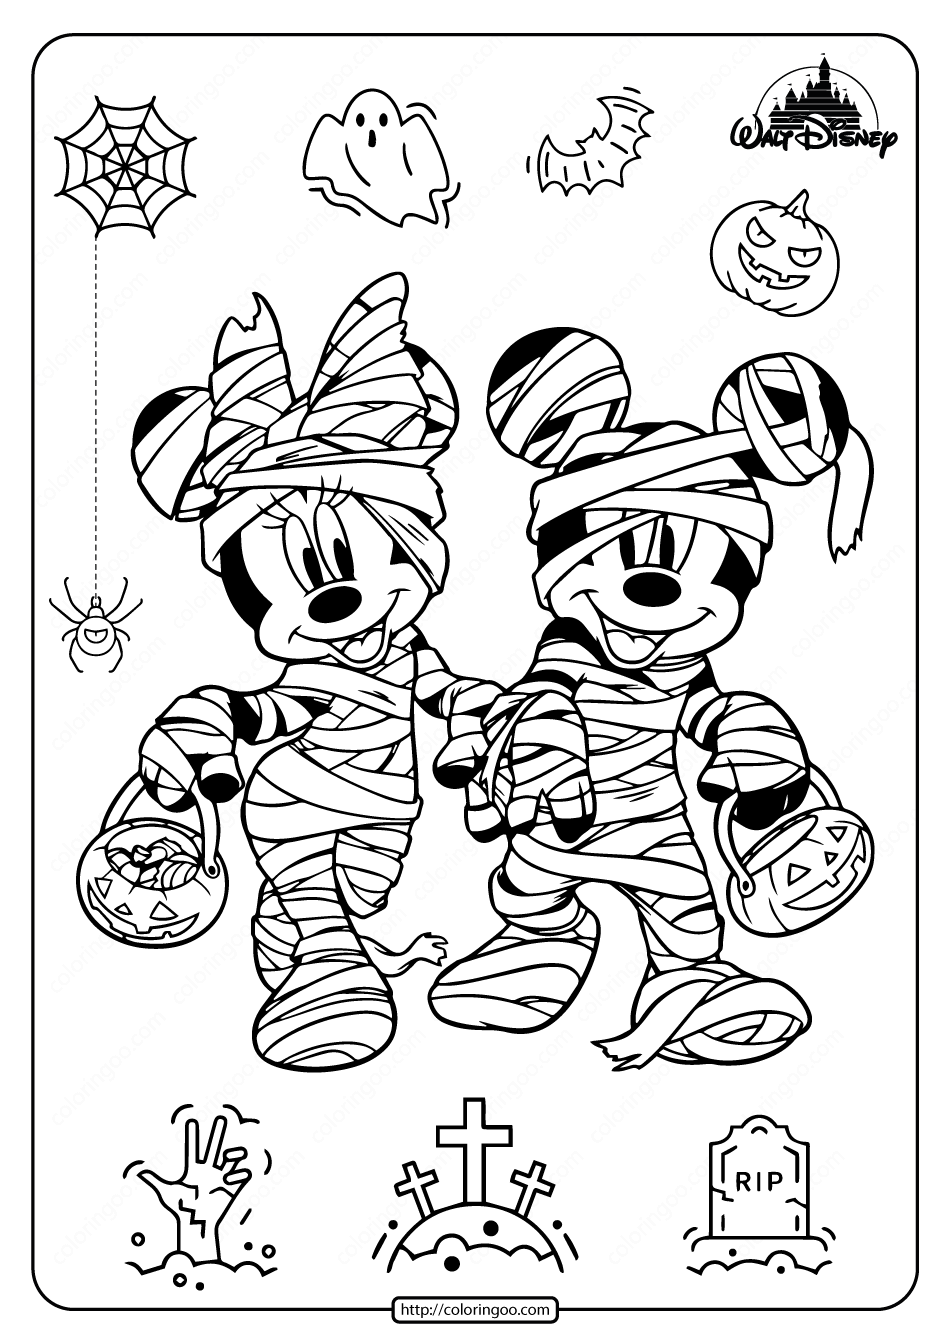 Happy Halloween Disney Coloring Pages